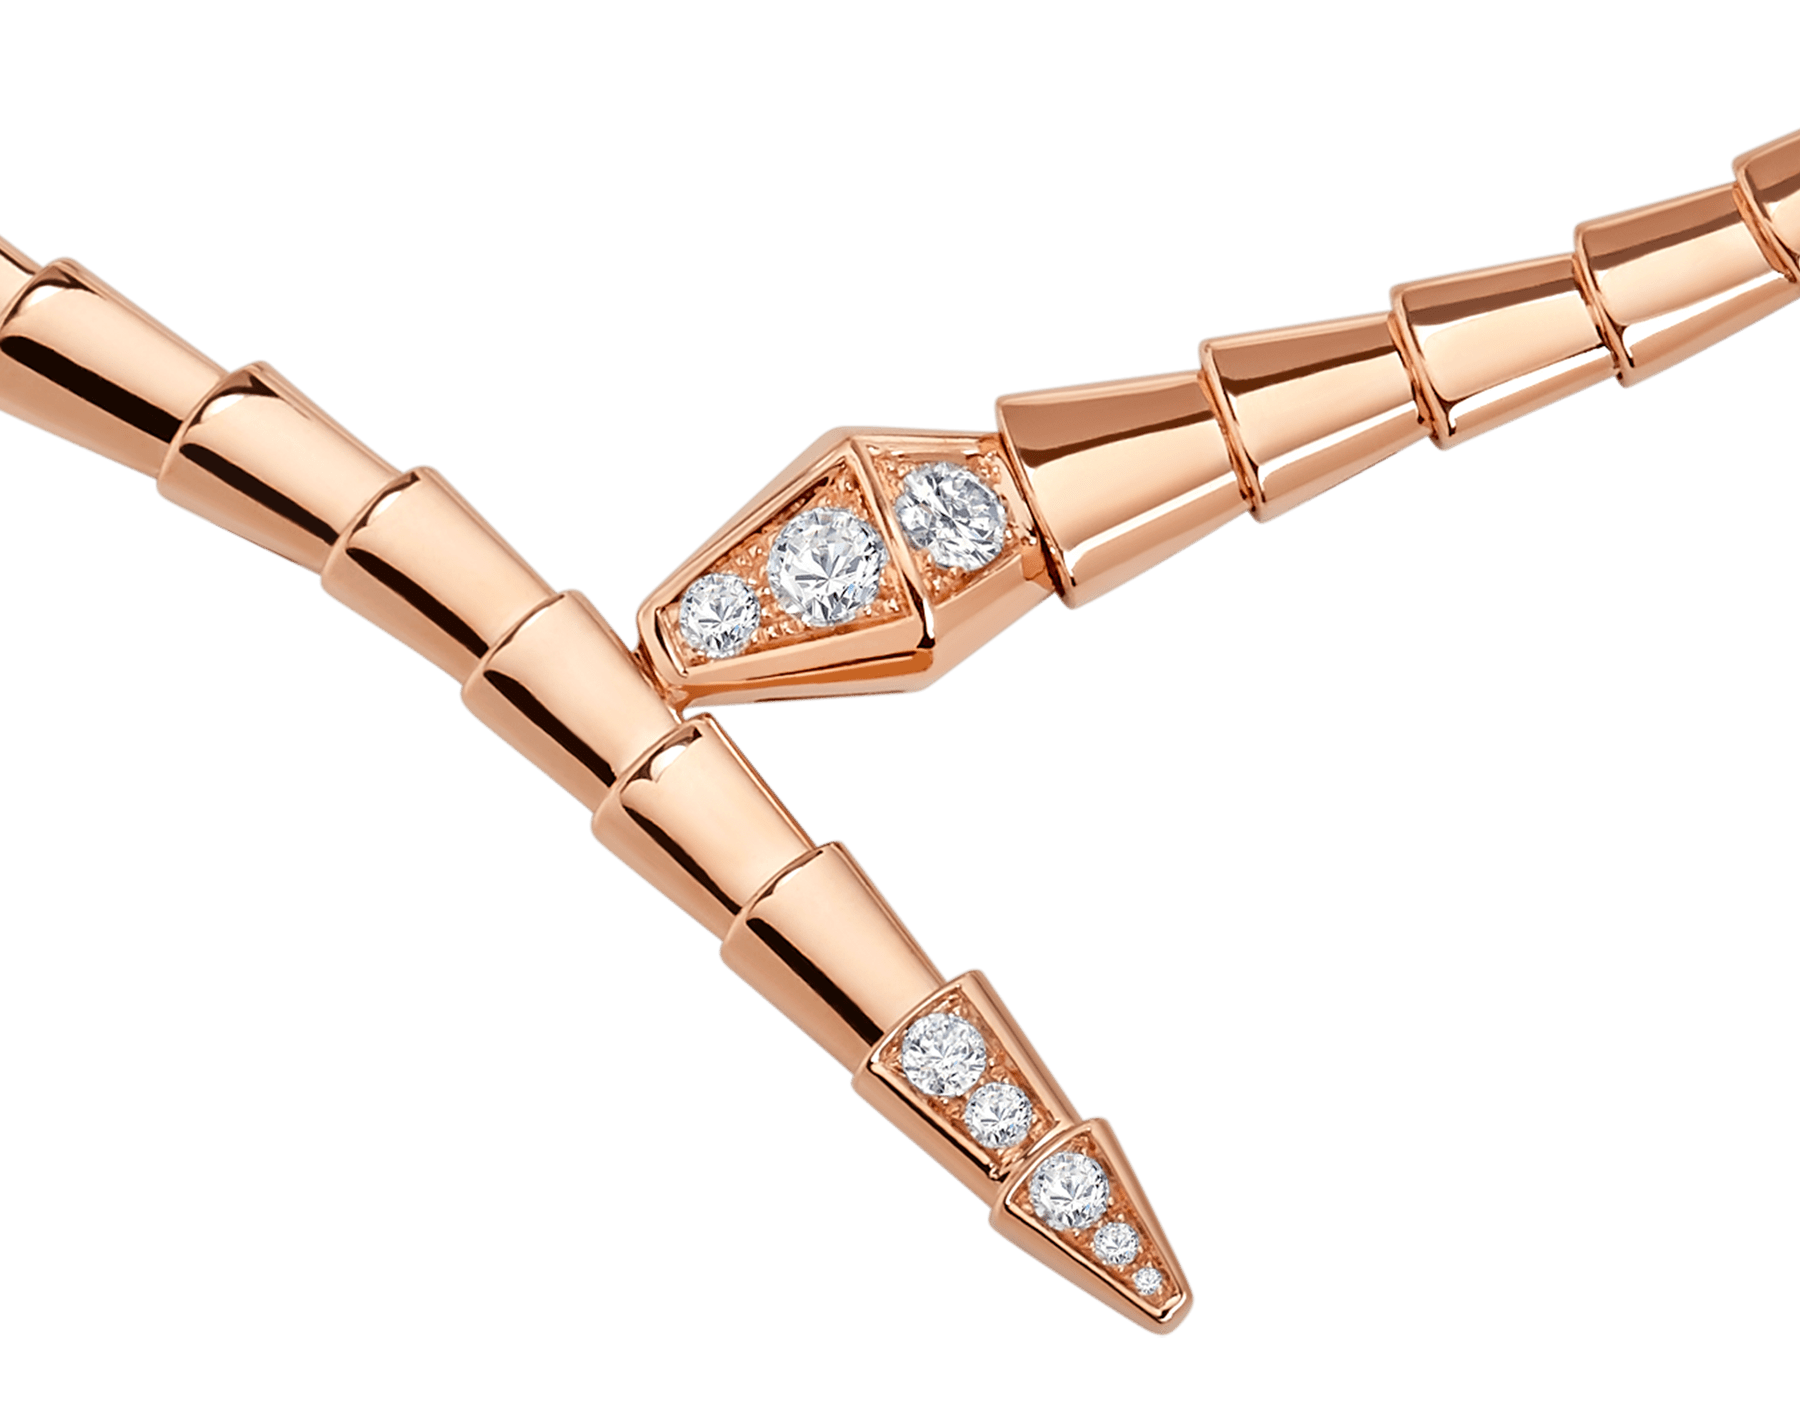 Serpenti Viper 18 kt rose gold necklace, set with demi-pavé diamonds CL858905 image 2